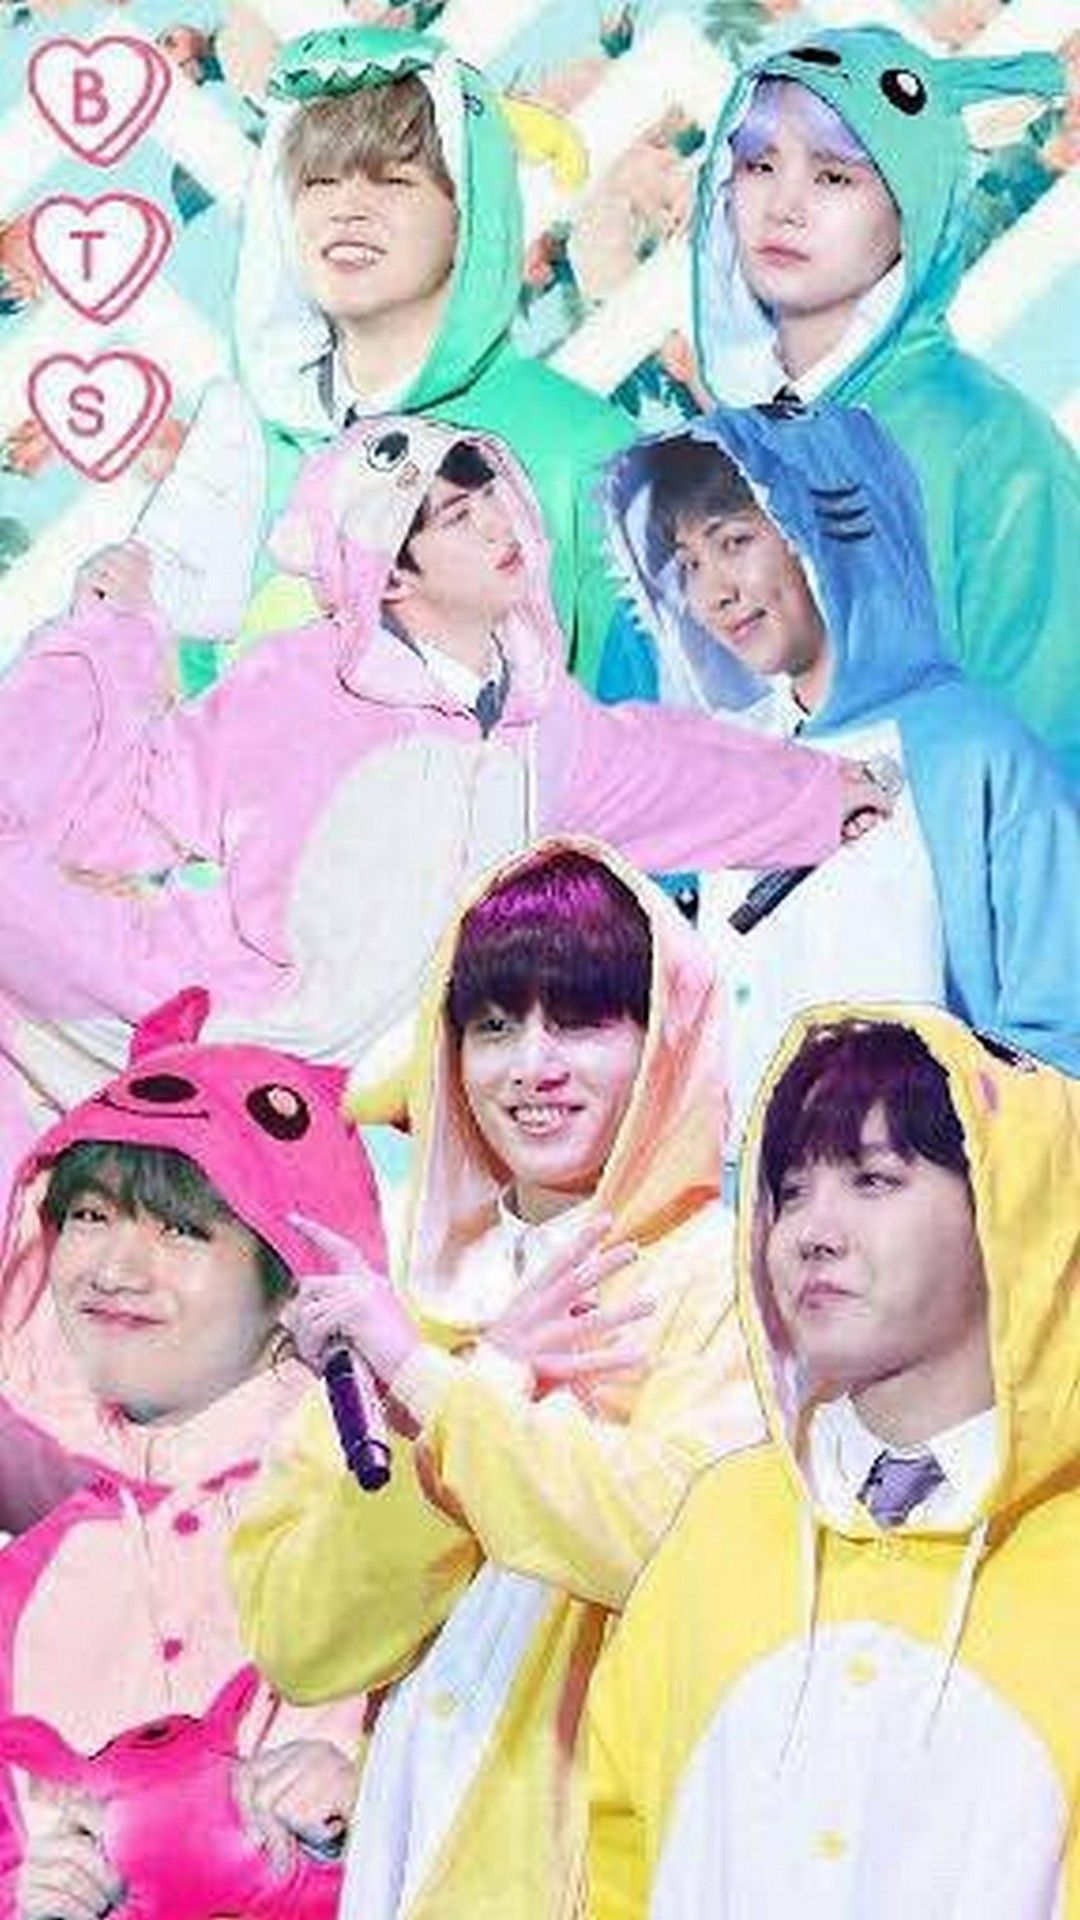 Wallpaper Bts For Iphone Best Iphone Wallpaper Iphone Wallpaper Bts Bts Wallpaper Funny Love Images Bts cute and funny wallpapers